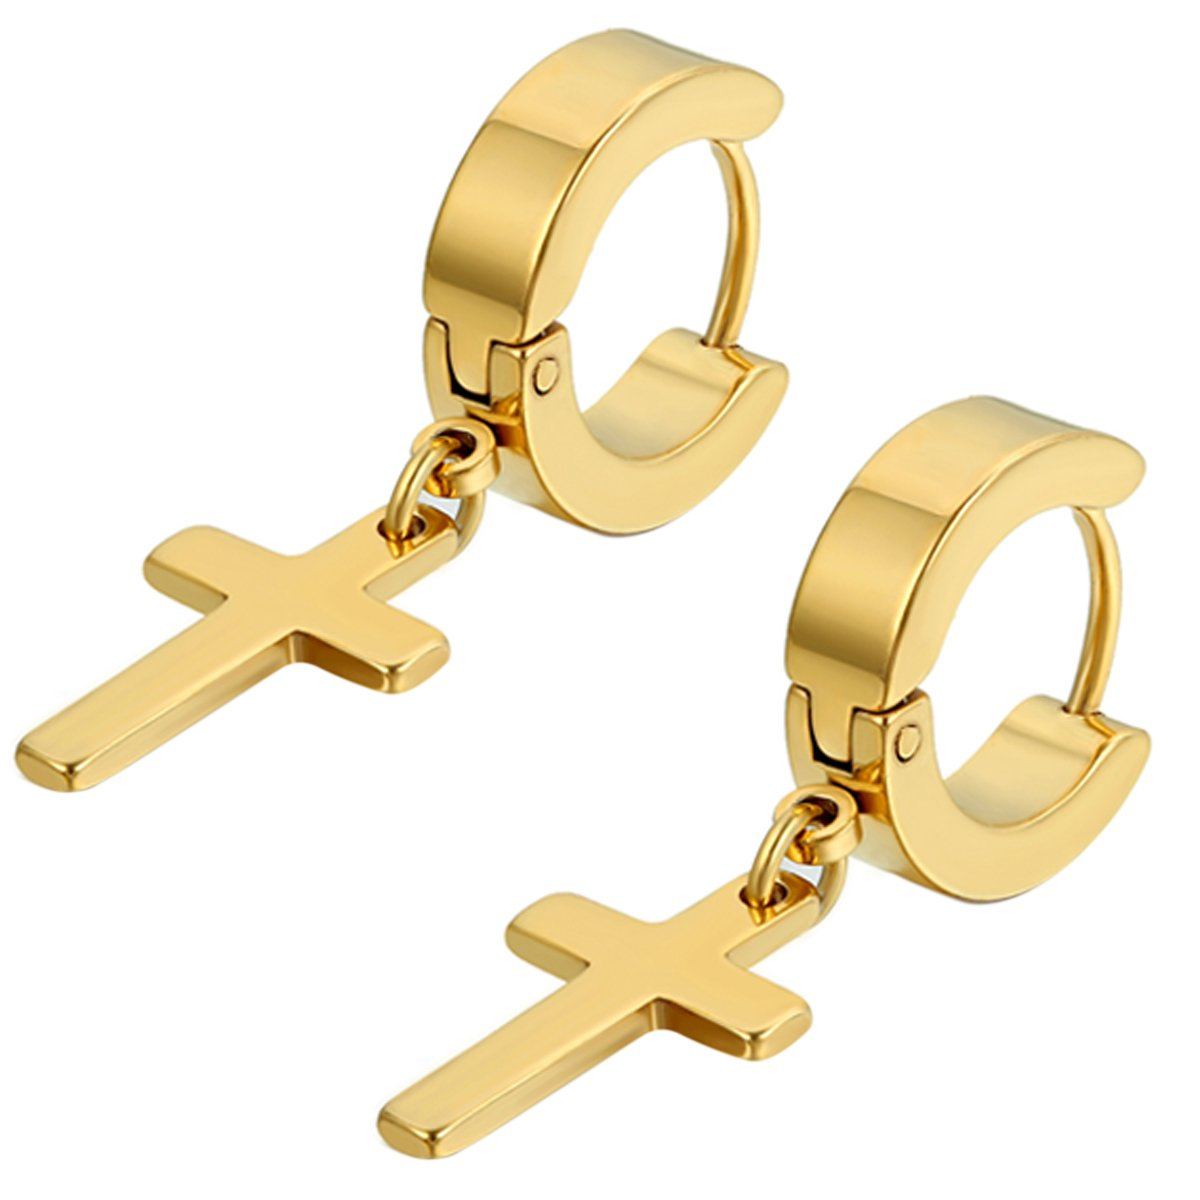 Flongo Men's Womens Vintage Stainless Steel Gold Cross Dangle Hinged Hoop Earrings, Stainless Steel Hoop Huggie Earrings Cross Drop Dangle Earrings